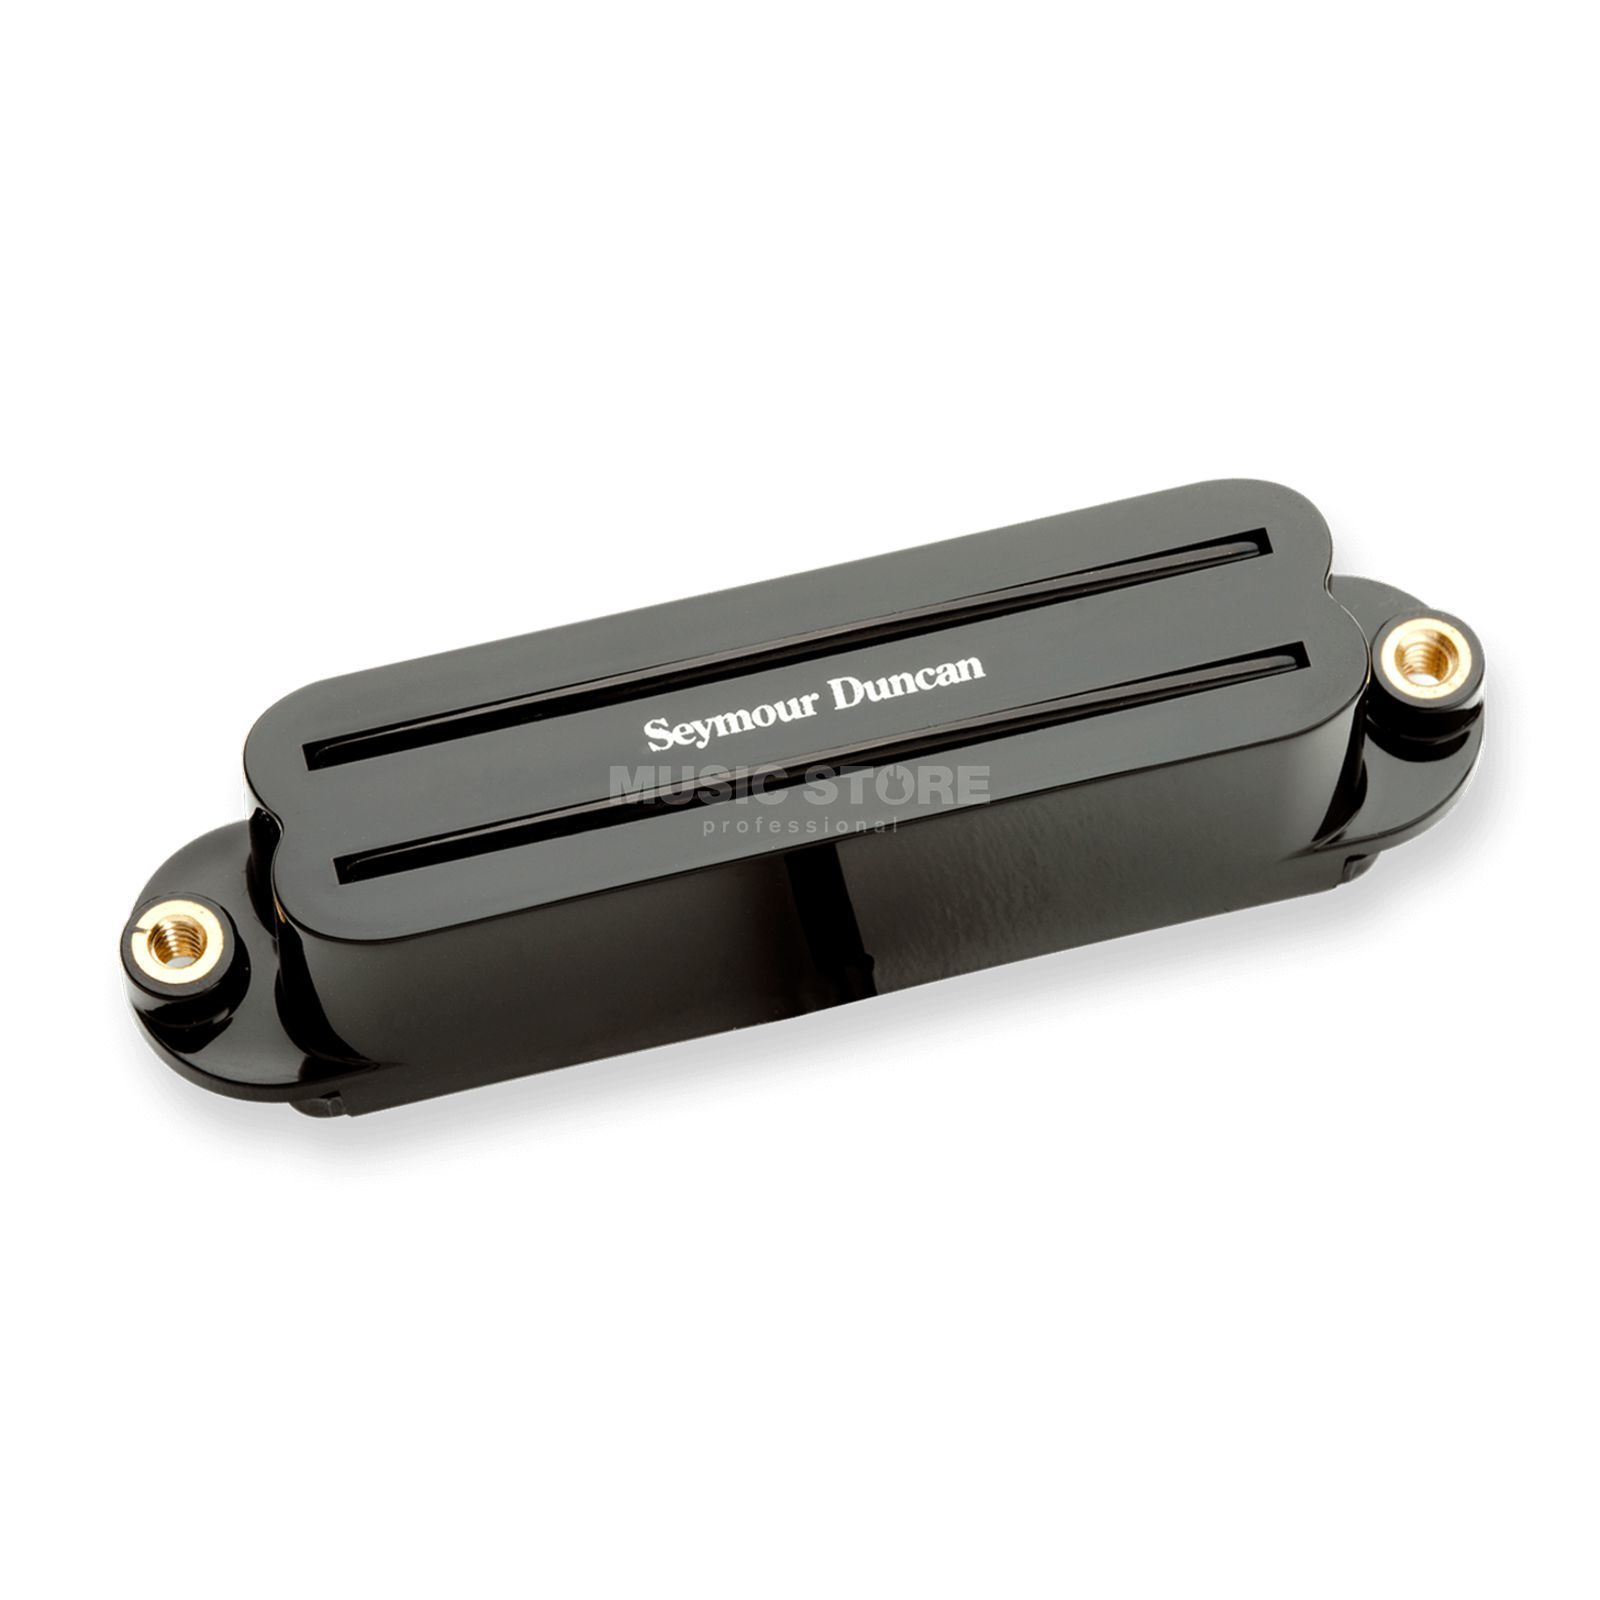 Seymour Duncan Strat Cool Rail Bridge black 4-phase Изображение товара